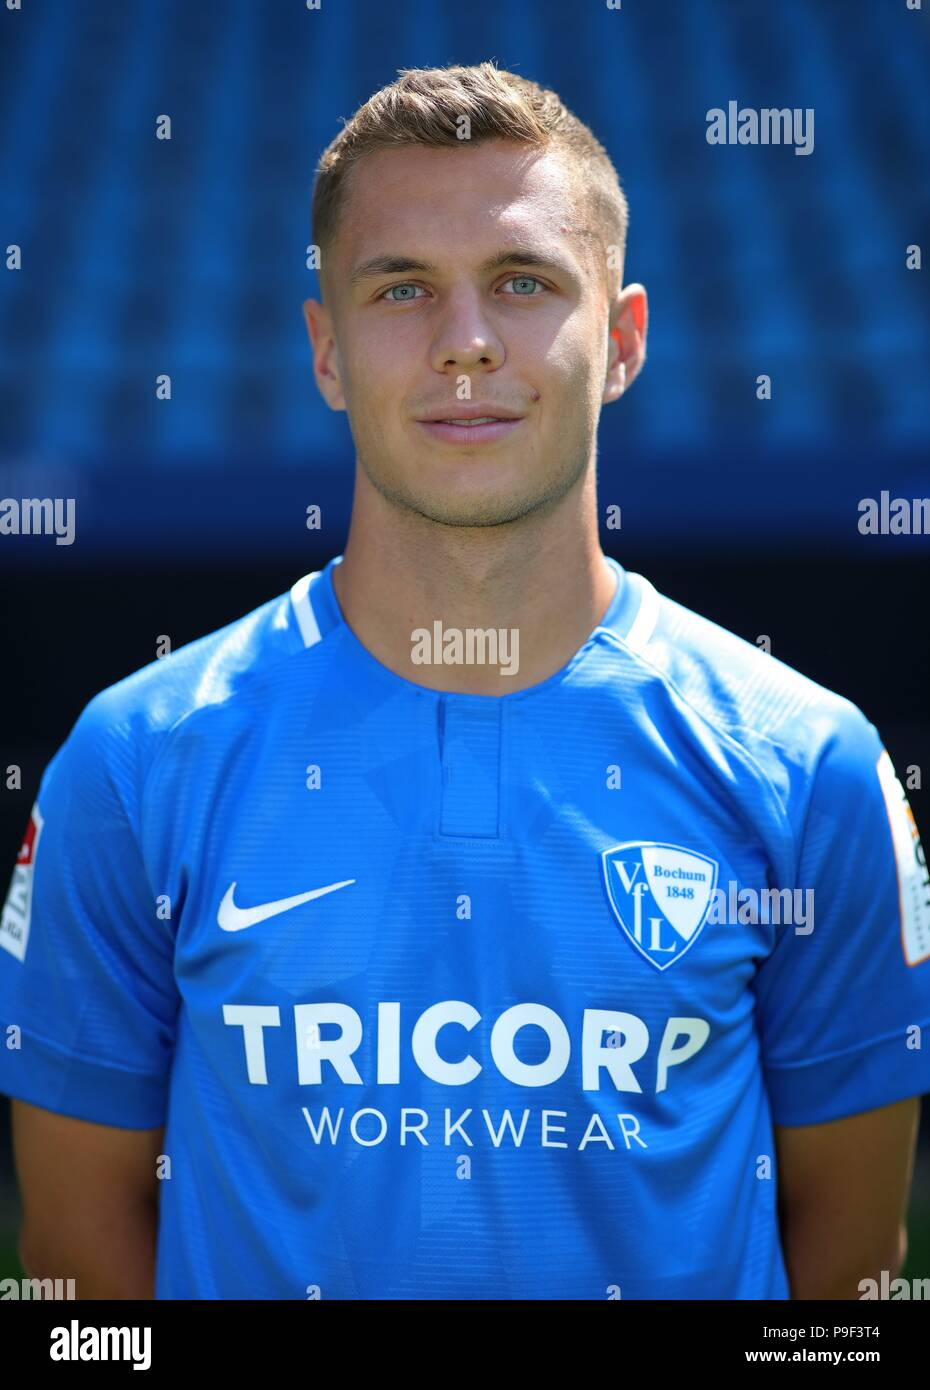 firo: 17.07.2018, football, 2.Bundesliga, season 2018/2019, VfL Bochum, photo shoot, portraits, portrait, Sebastian MAIER, | usage worldwide - Stock Image